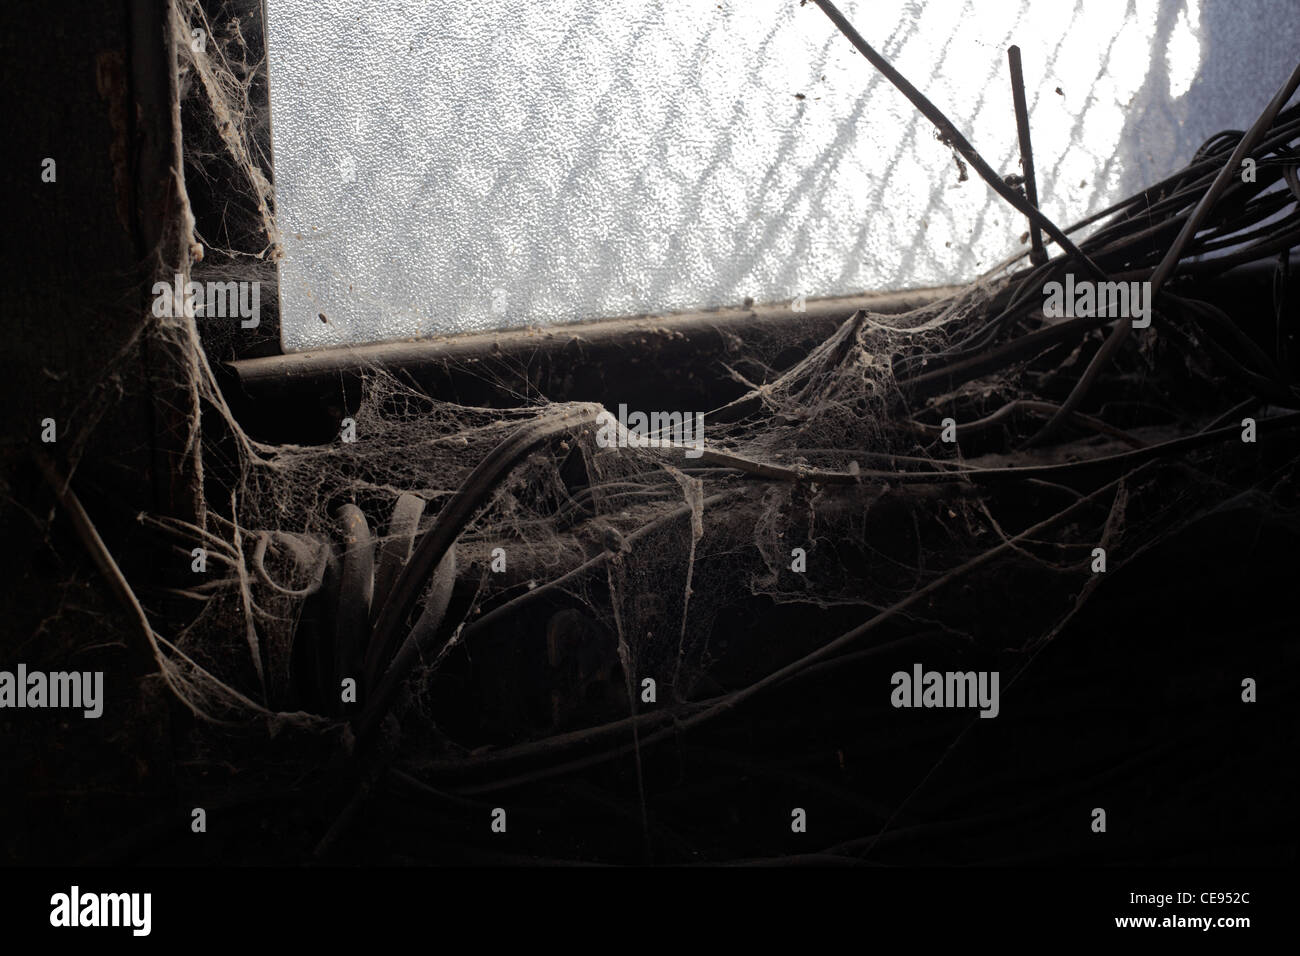 spider webs at basement window - Stock Image